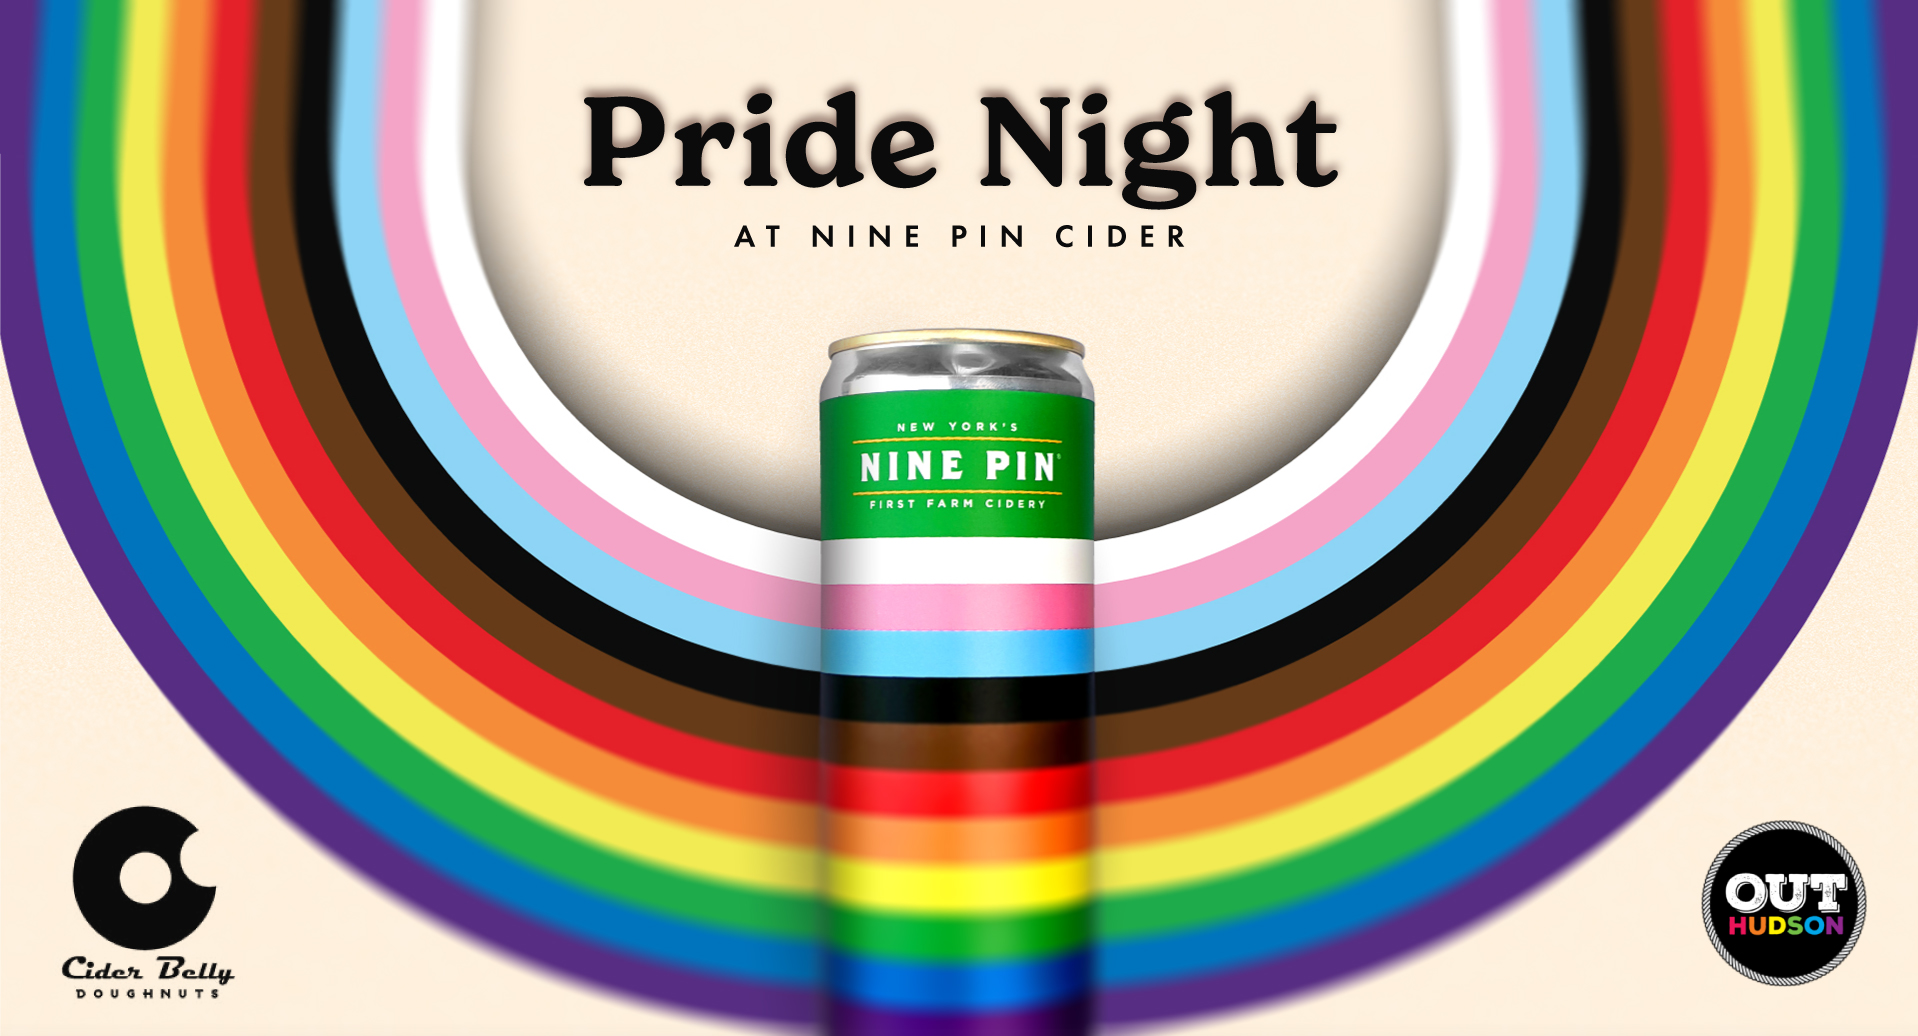 Image reads Pride Night at Nine Pin Cider. Contains an upside down rainbow.